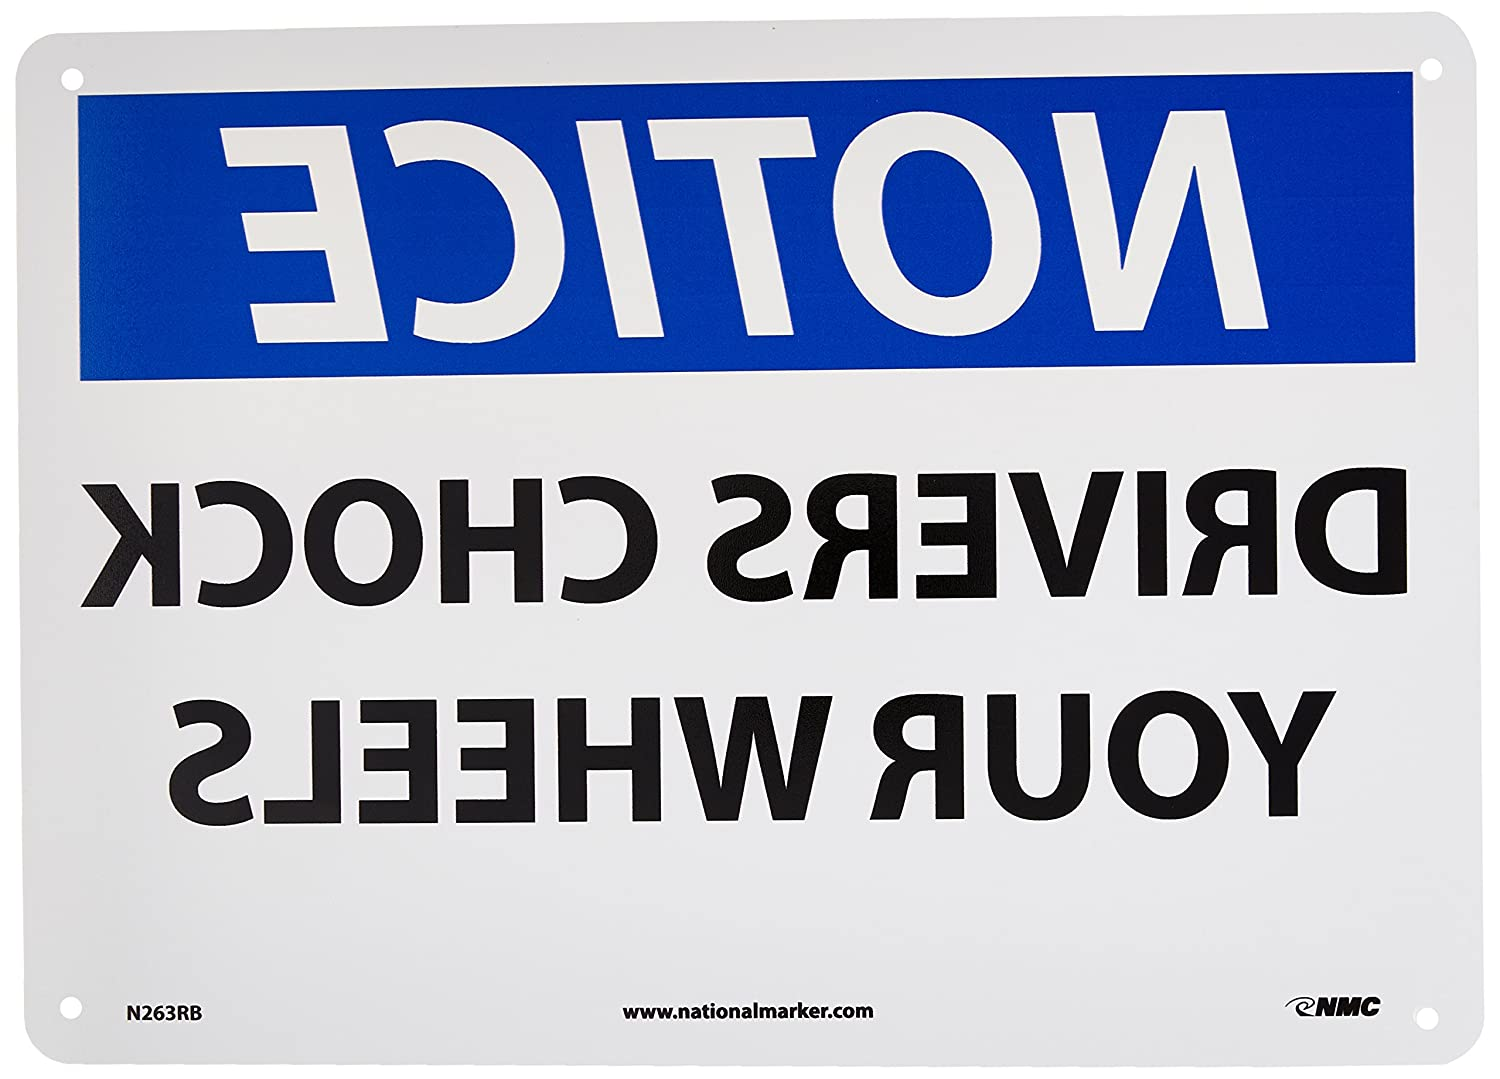 14 Length x 10 Height DRIVERS CHOCK YOUR WHEELS with mirror image NMC N263RB OSHA Sign Black//Blue on White LegendNOTICE Rigid Plastic